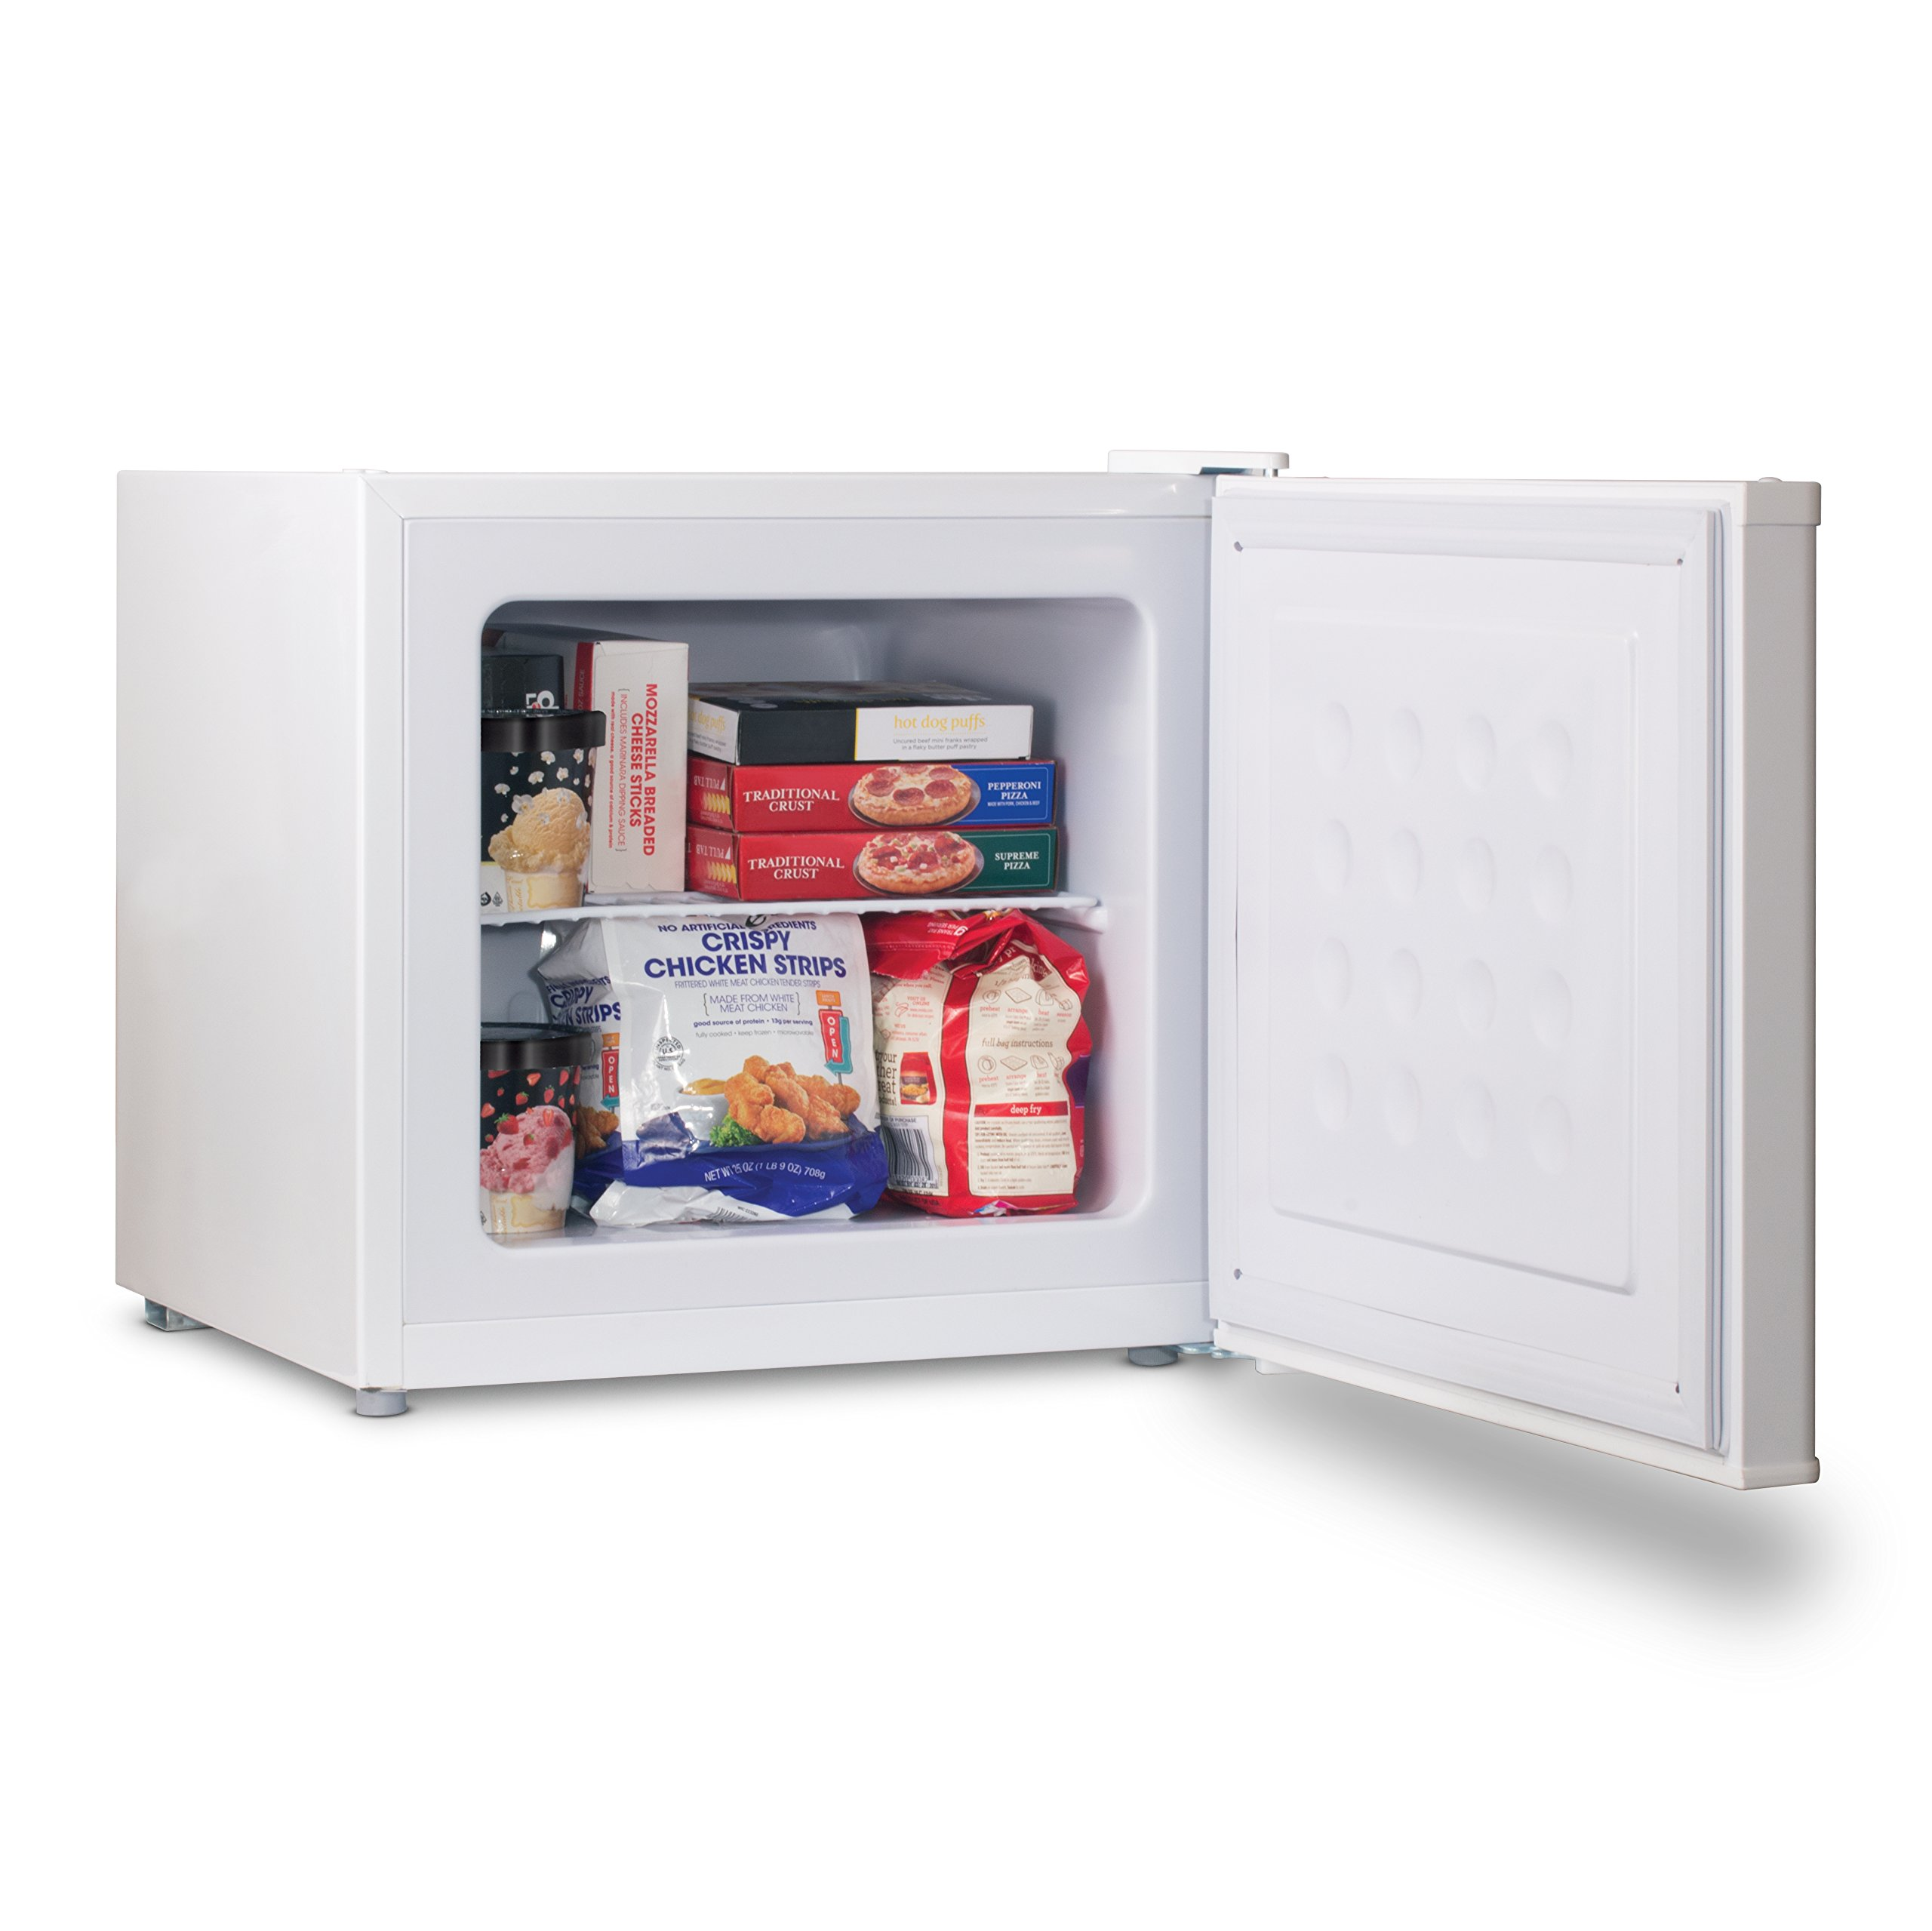 Commercial Cool CCUK12W 1.2 Cu. Ft. Upright Freezer with Adjustable Thermostat Control and R600a Refrigerant, White by Commercial Cool (Image #2)